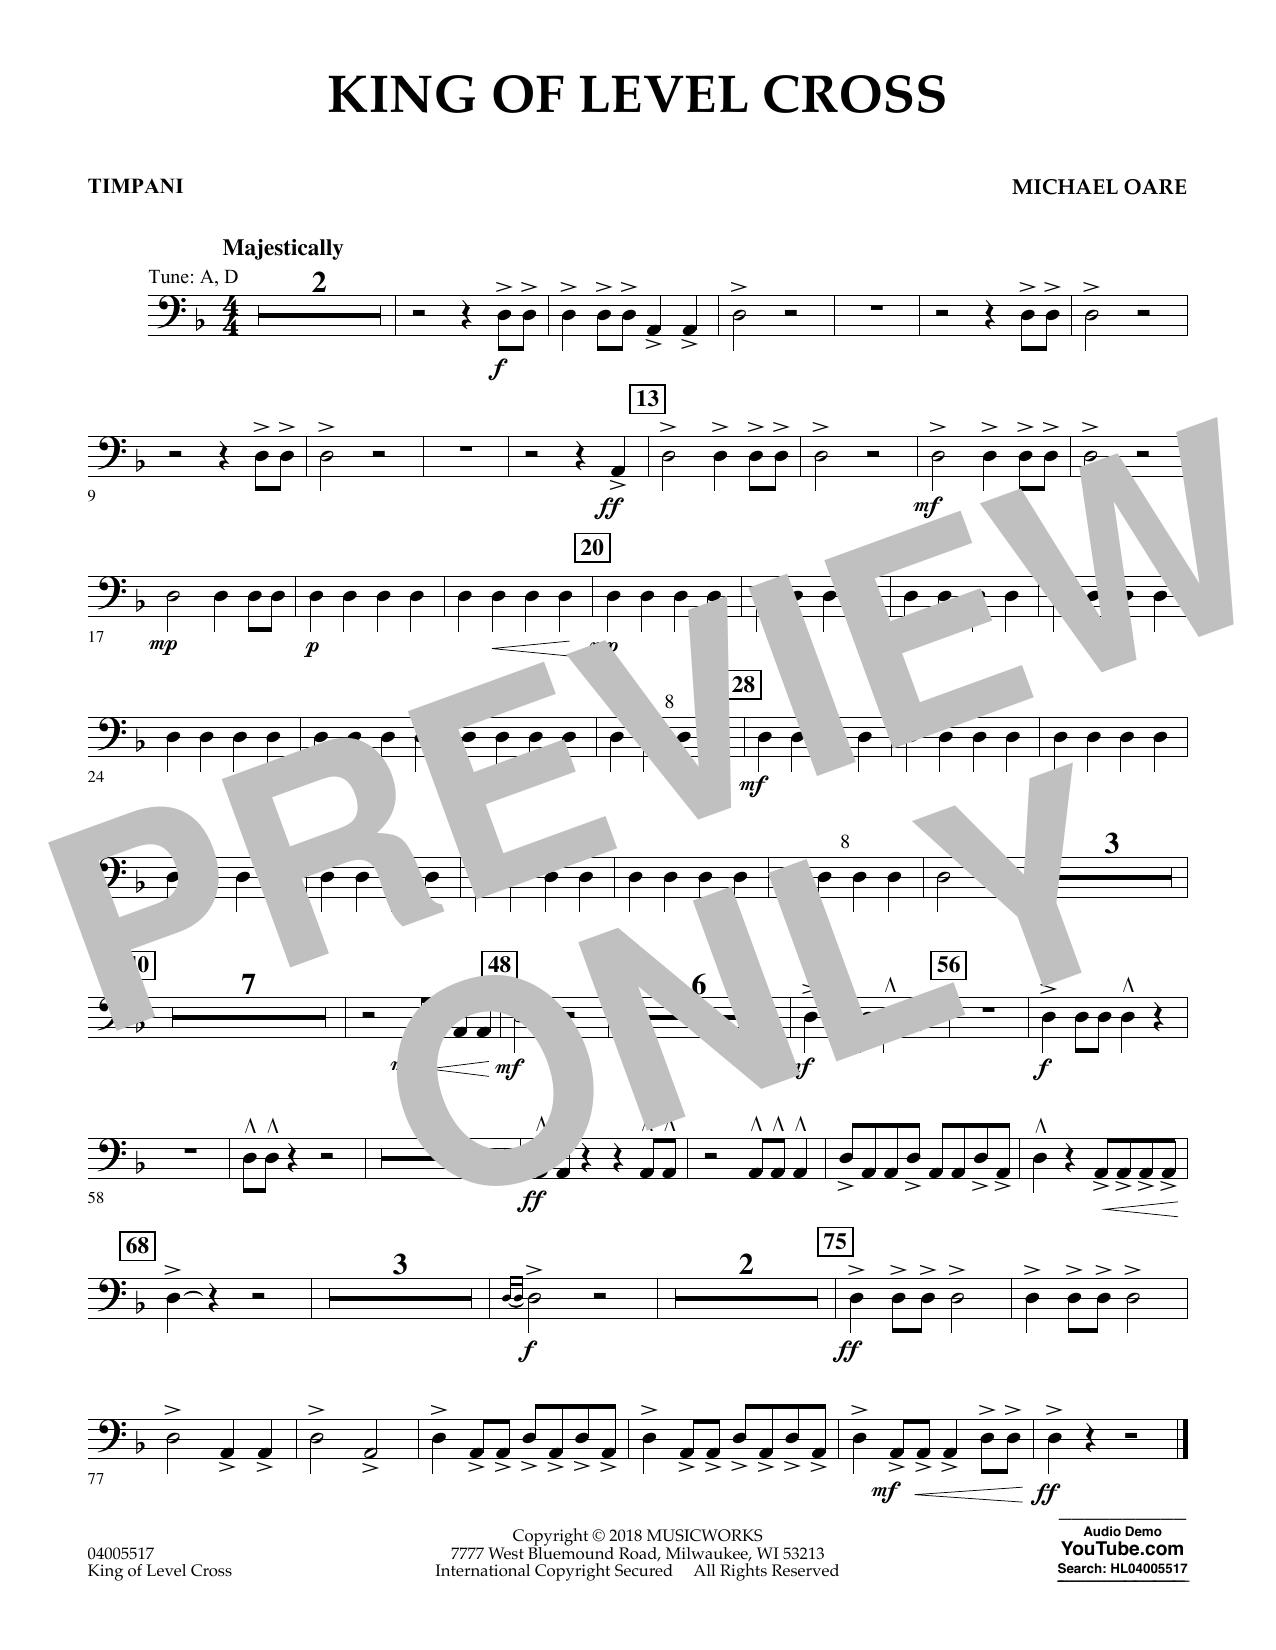 Michael Oare King of Level Cross - Timpani sheet music notes and chords. Download Printable PDF.